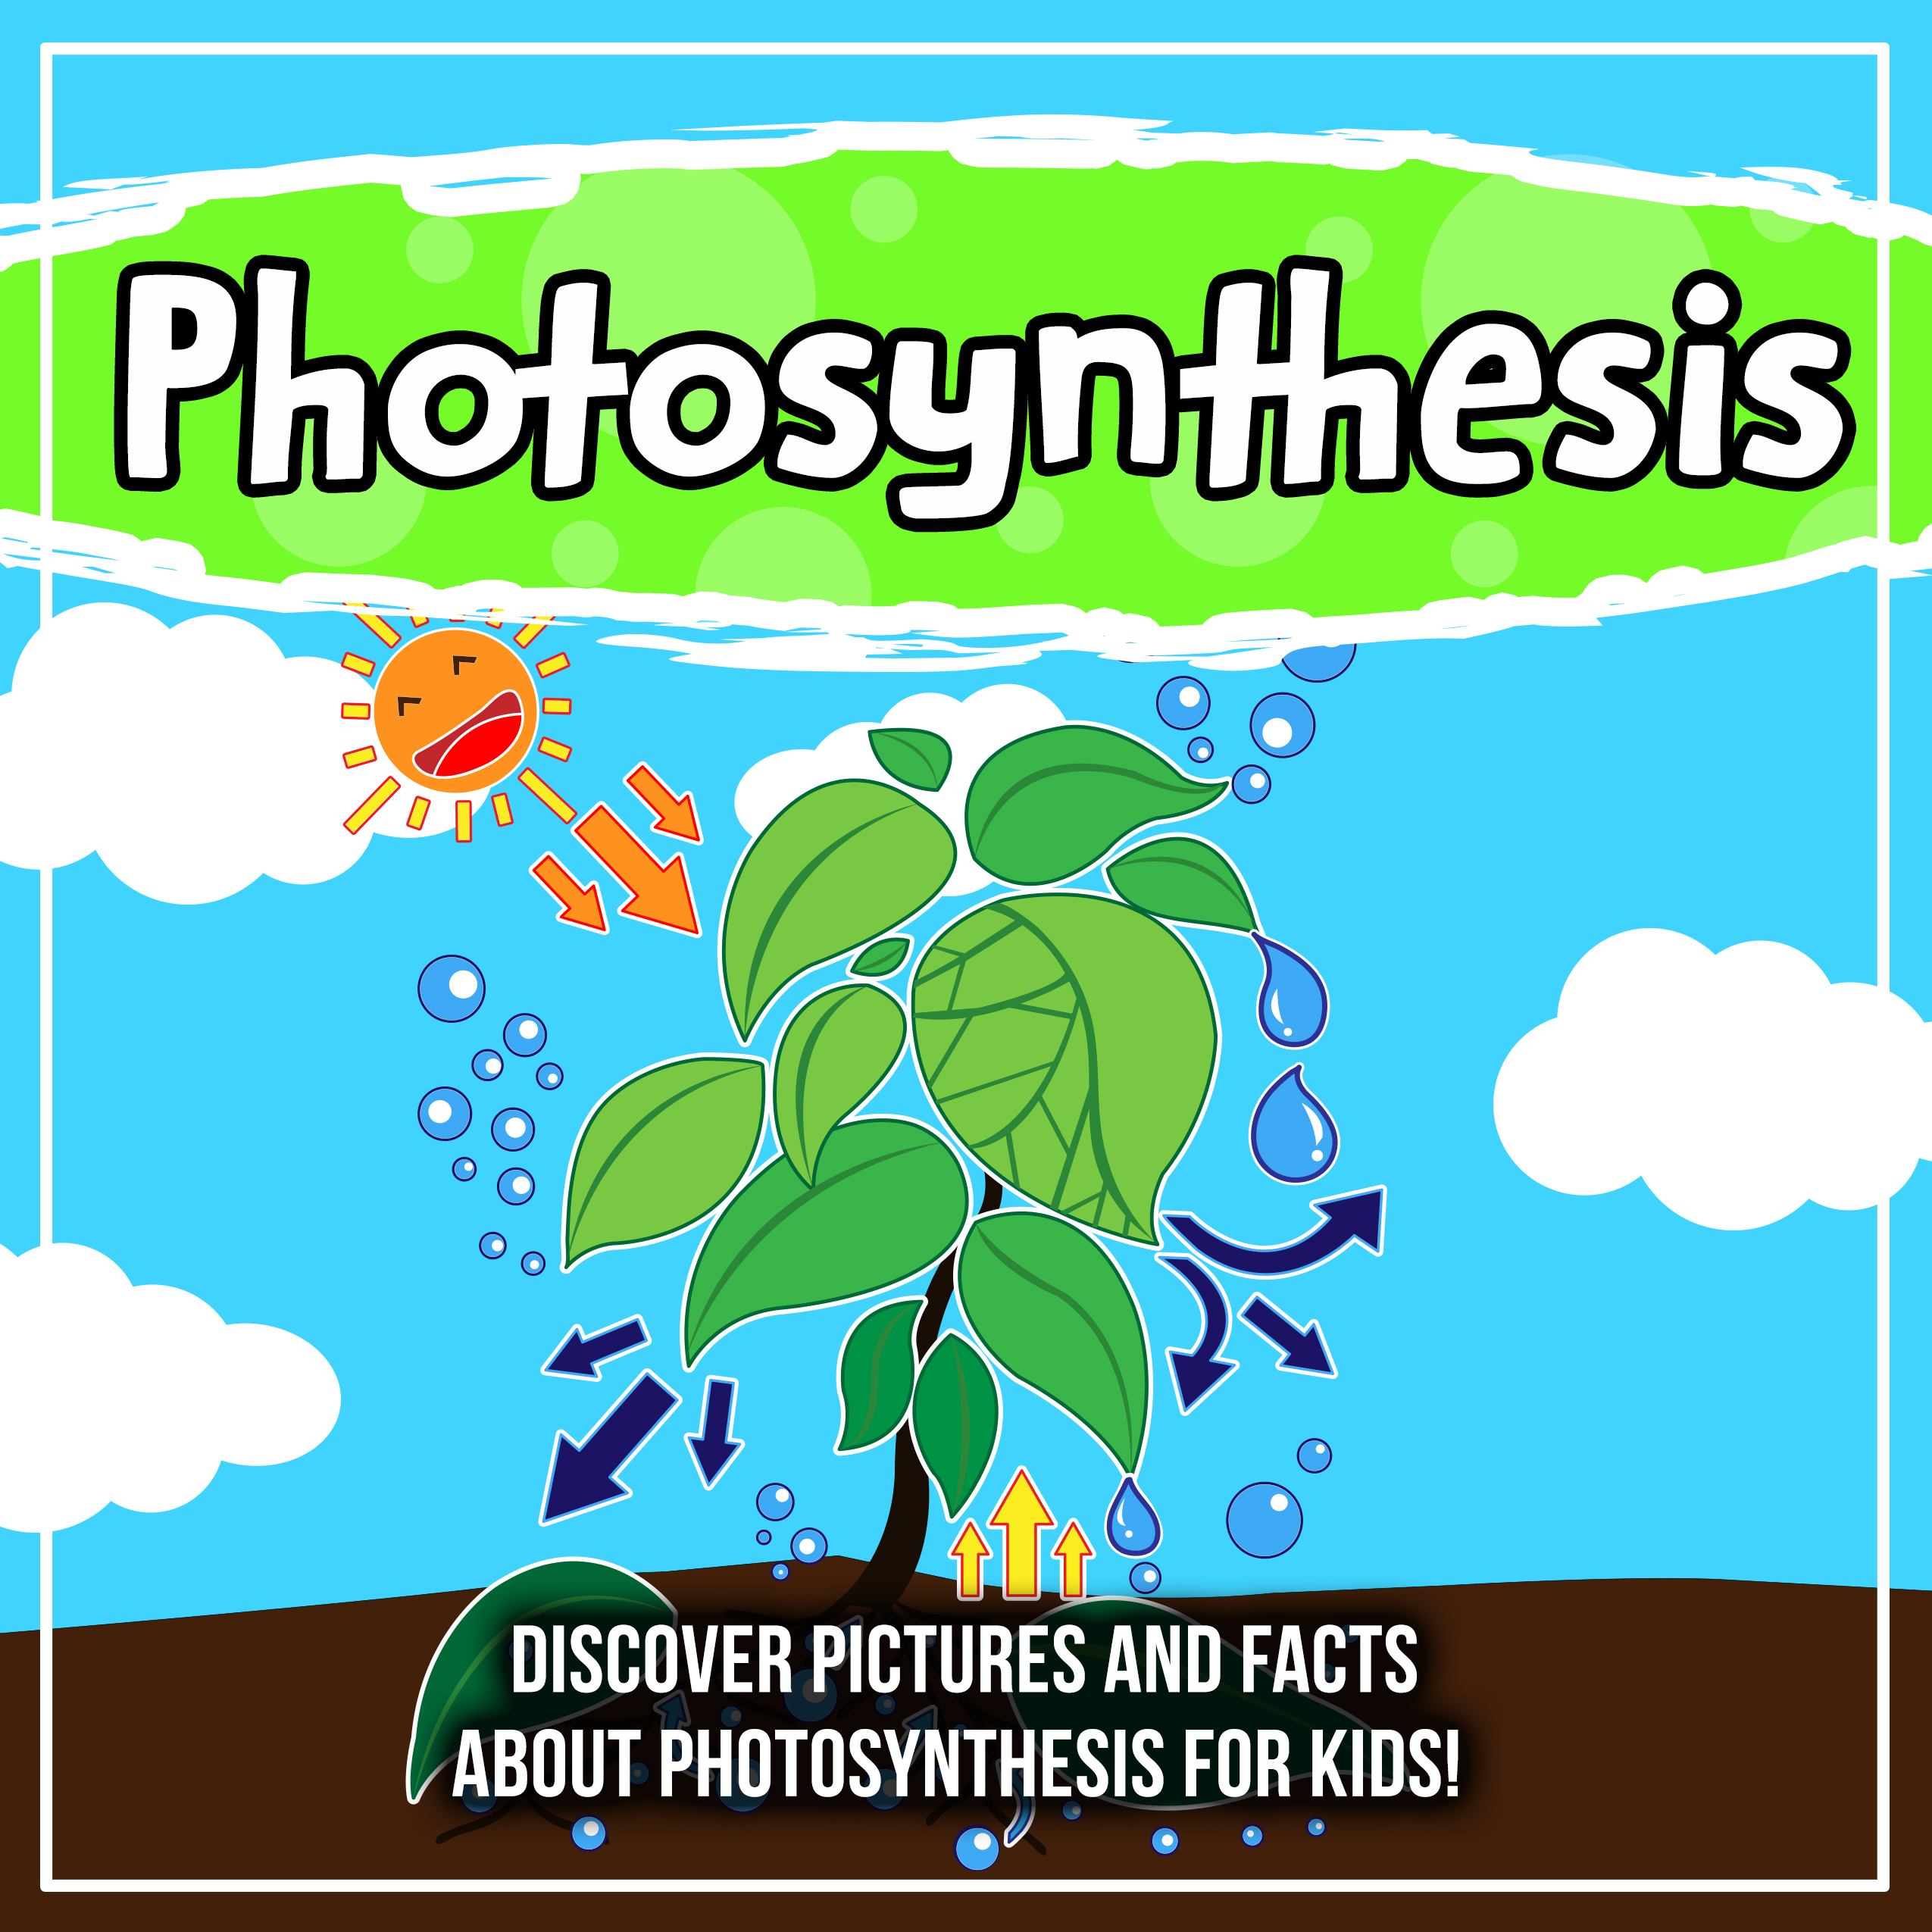 Photosynthesis: Discover Pictures and Facts About Photosynthesis For Kids!